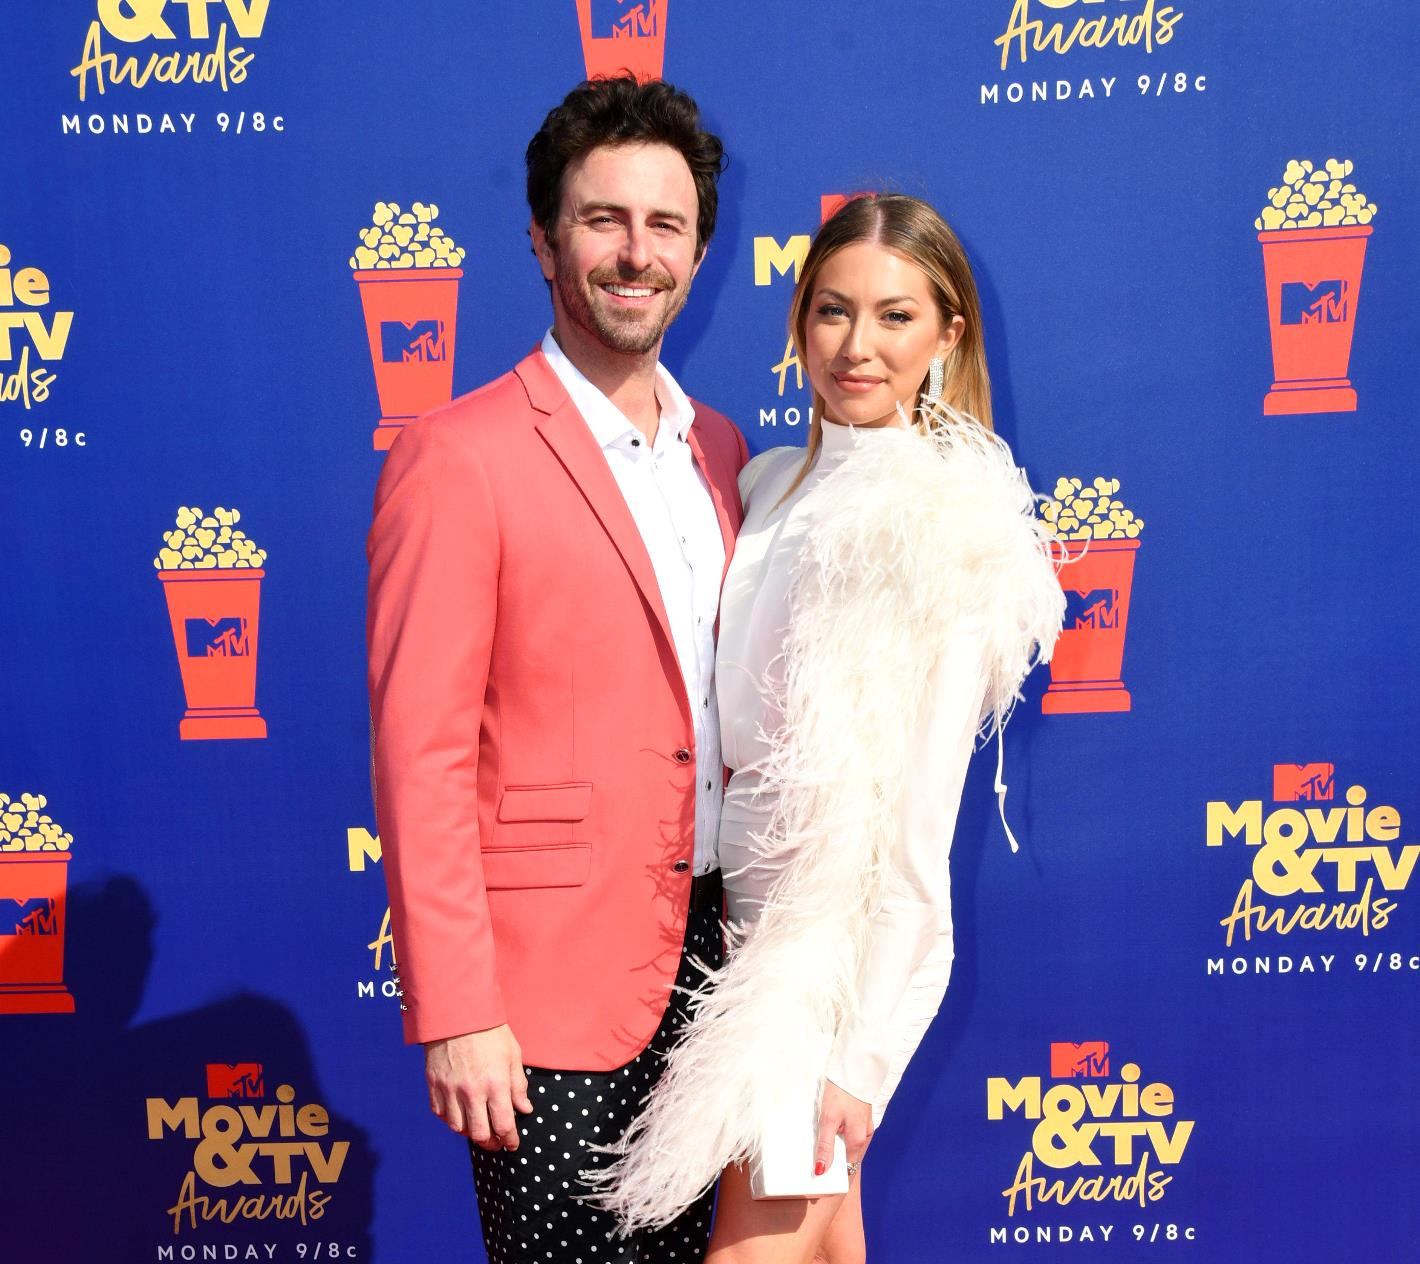 'Vanderpump Rules' Stassi Schroeder celebrates her engagement: 'I feel like Meghan Markle'